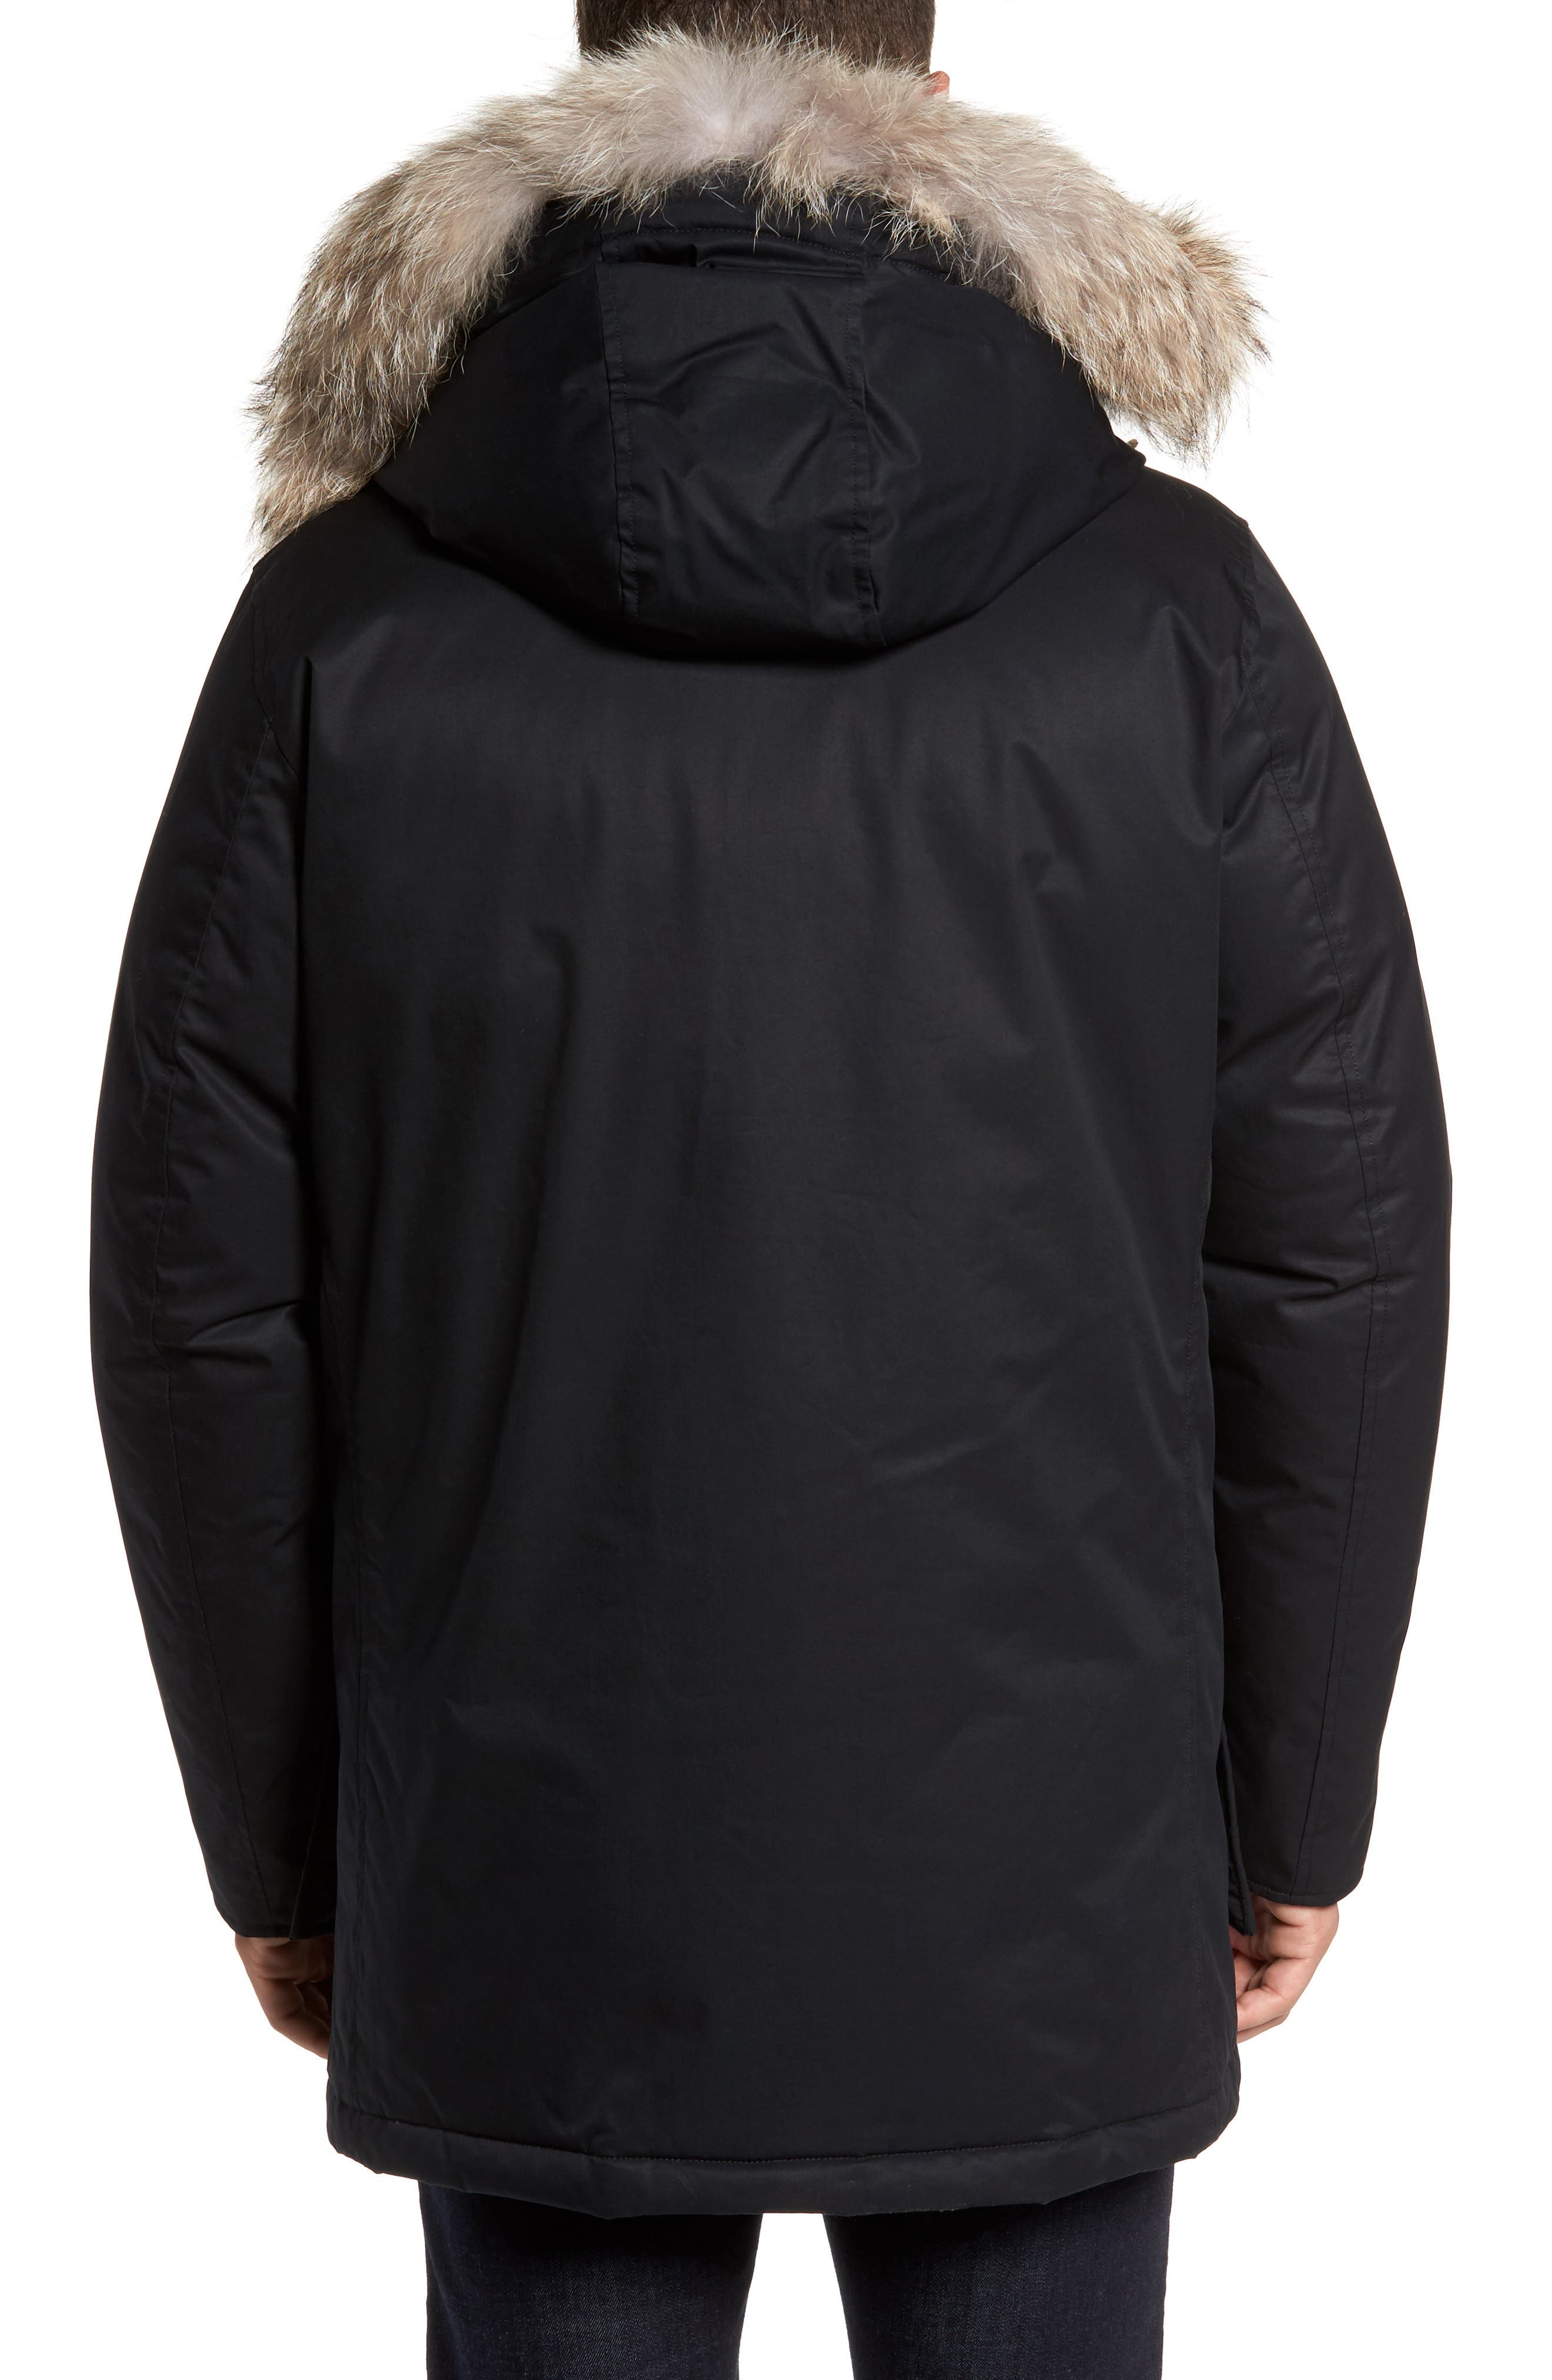 John Rich & Bros. Laminated Cotton Down Parka with Genuine Coyote Fur Trim,                             Alternate thumbnail 3, color,